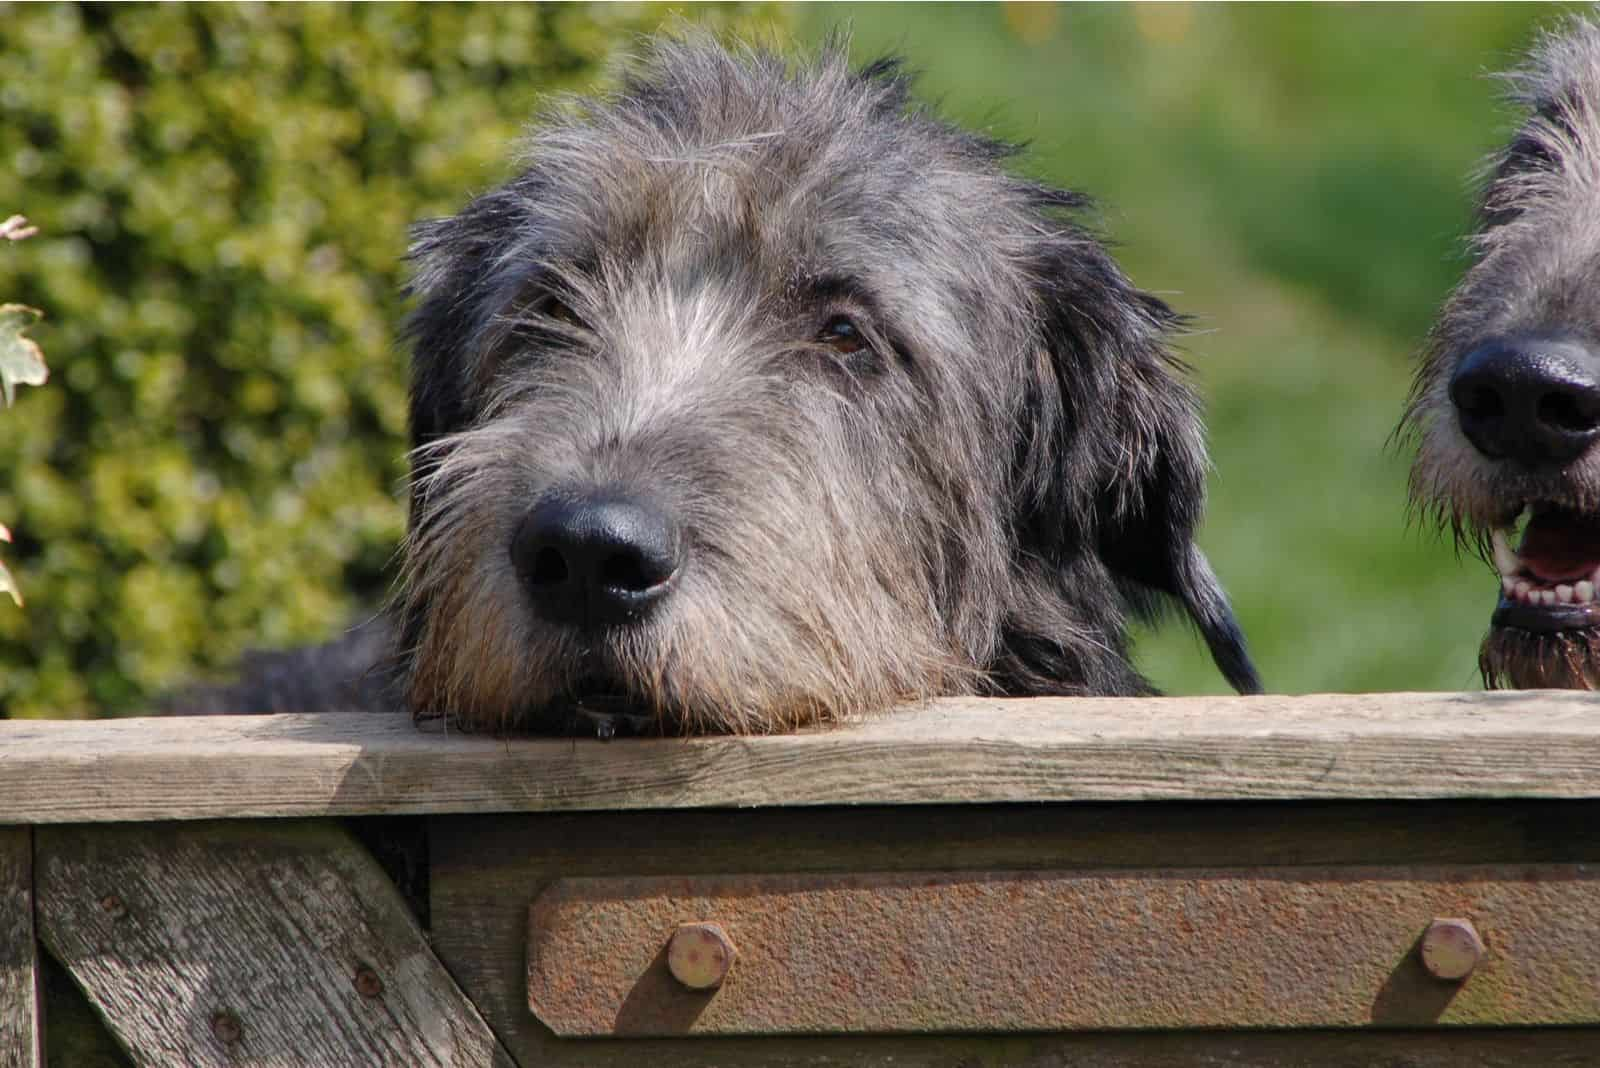 an irish wolfhound puppy resting its chin on the railings